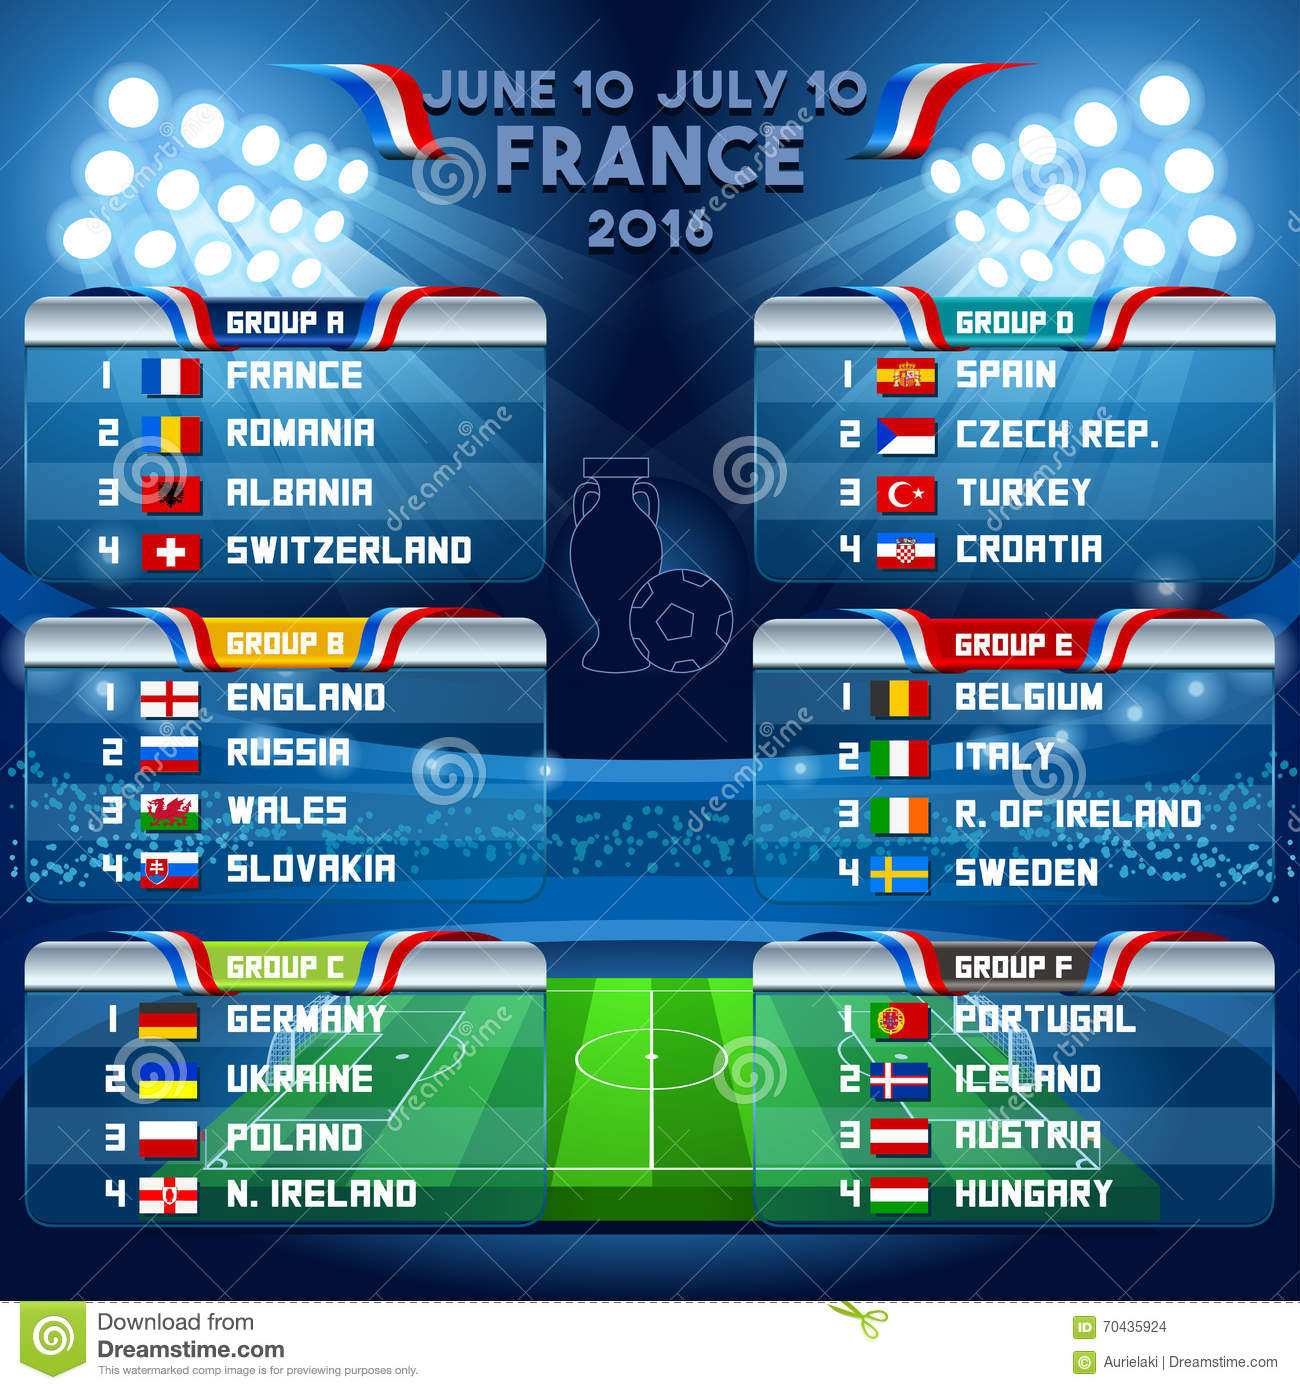 Euro Cup 2016 Live Socres, Results, Soccer Europe - UEFA Euro 2016 ...